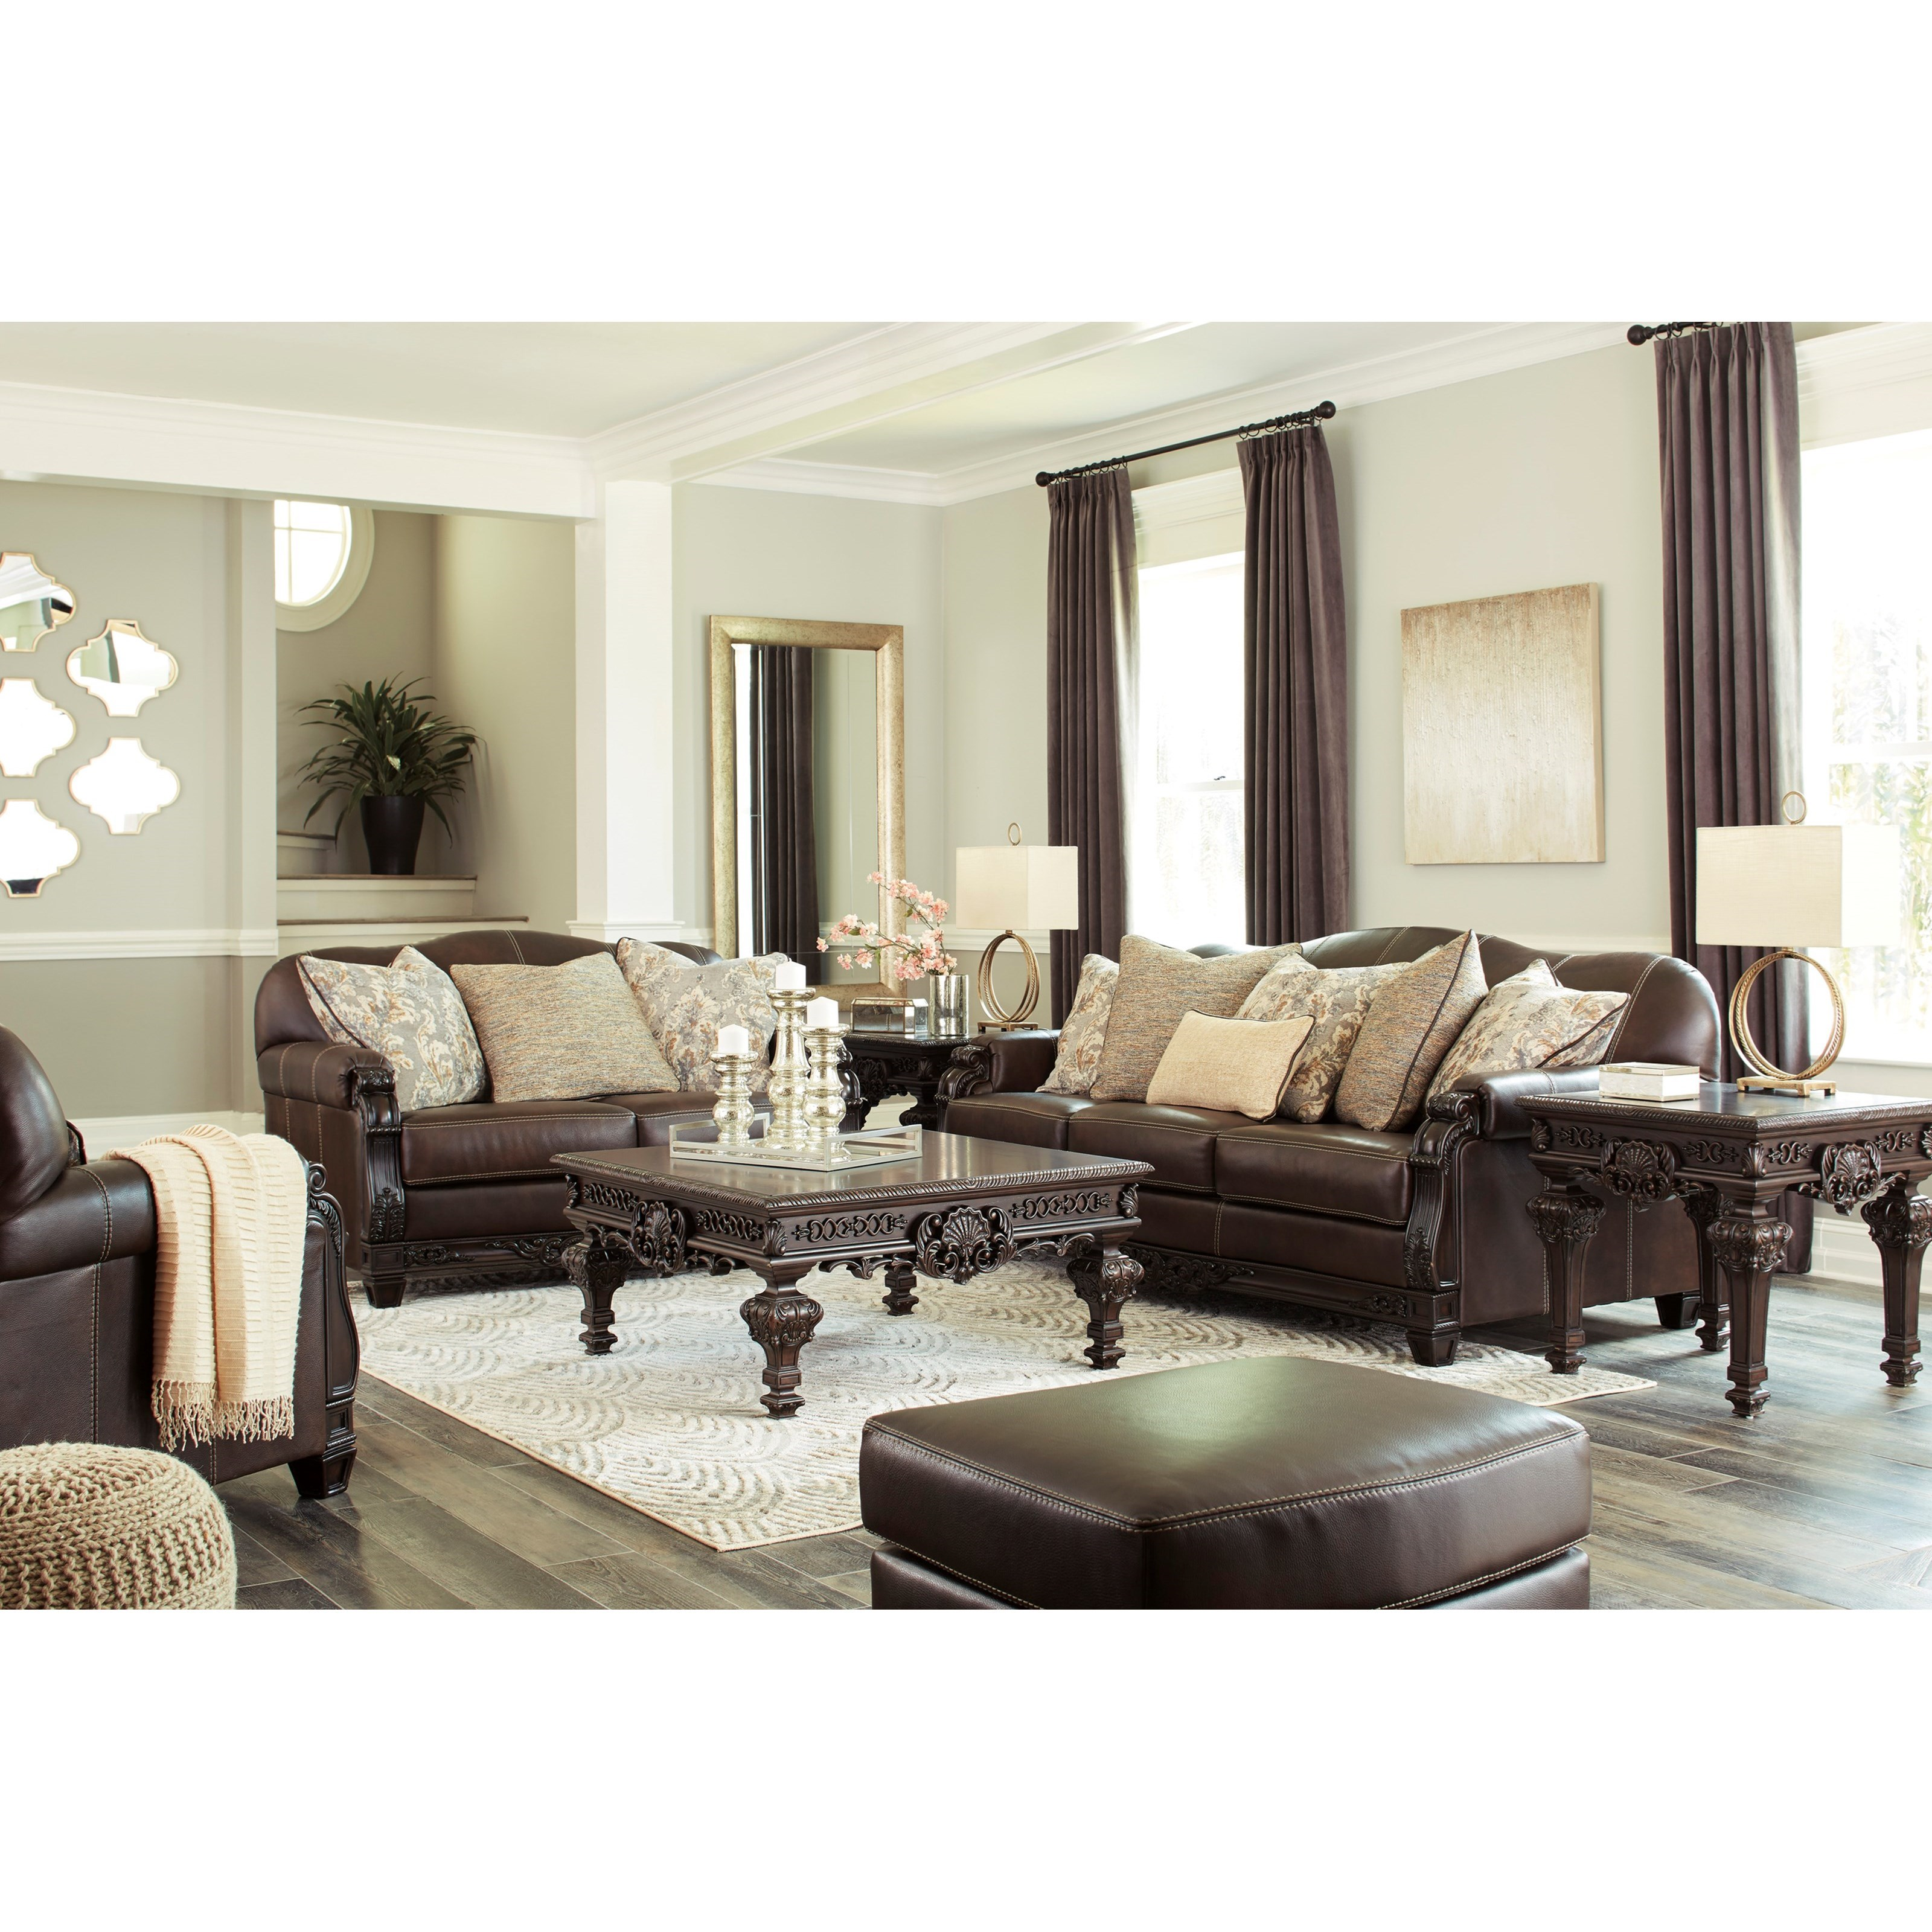 Embrook Stationary Living Room Group by Signature Design by Ashley at Northeast Factory Direct